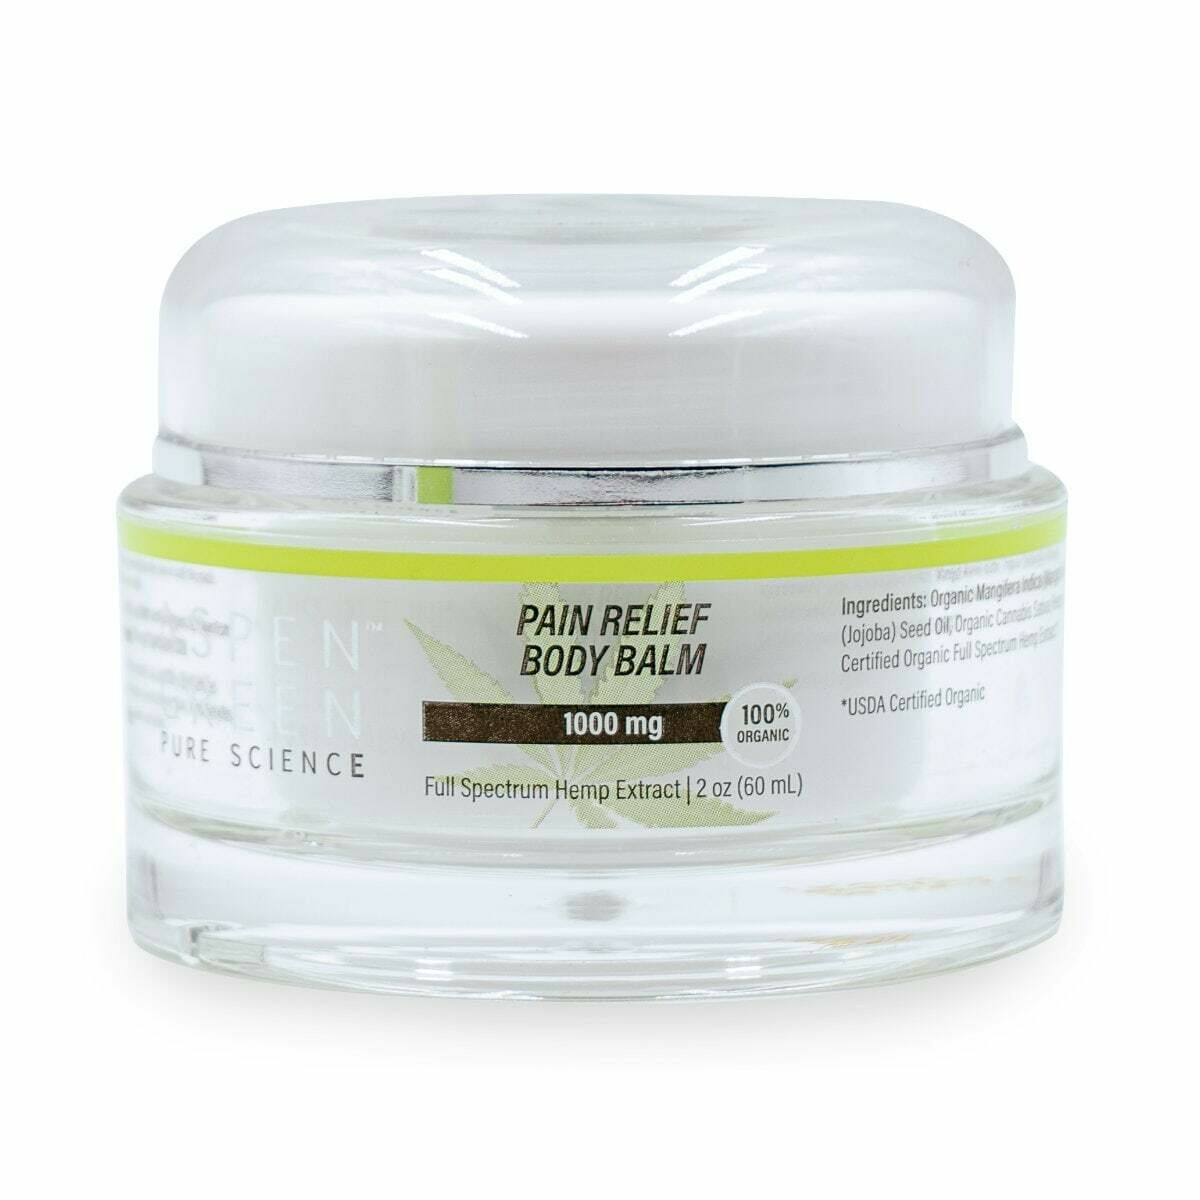 pain-relief-body-balm